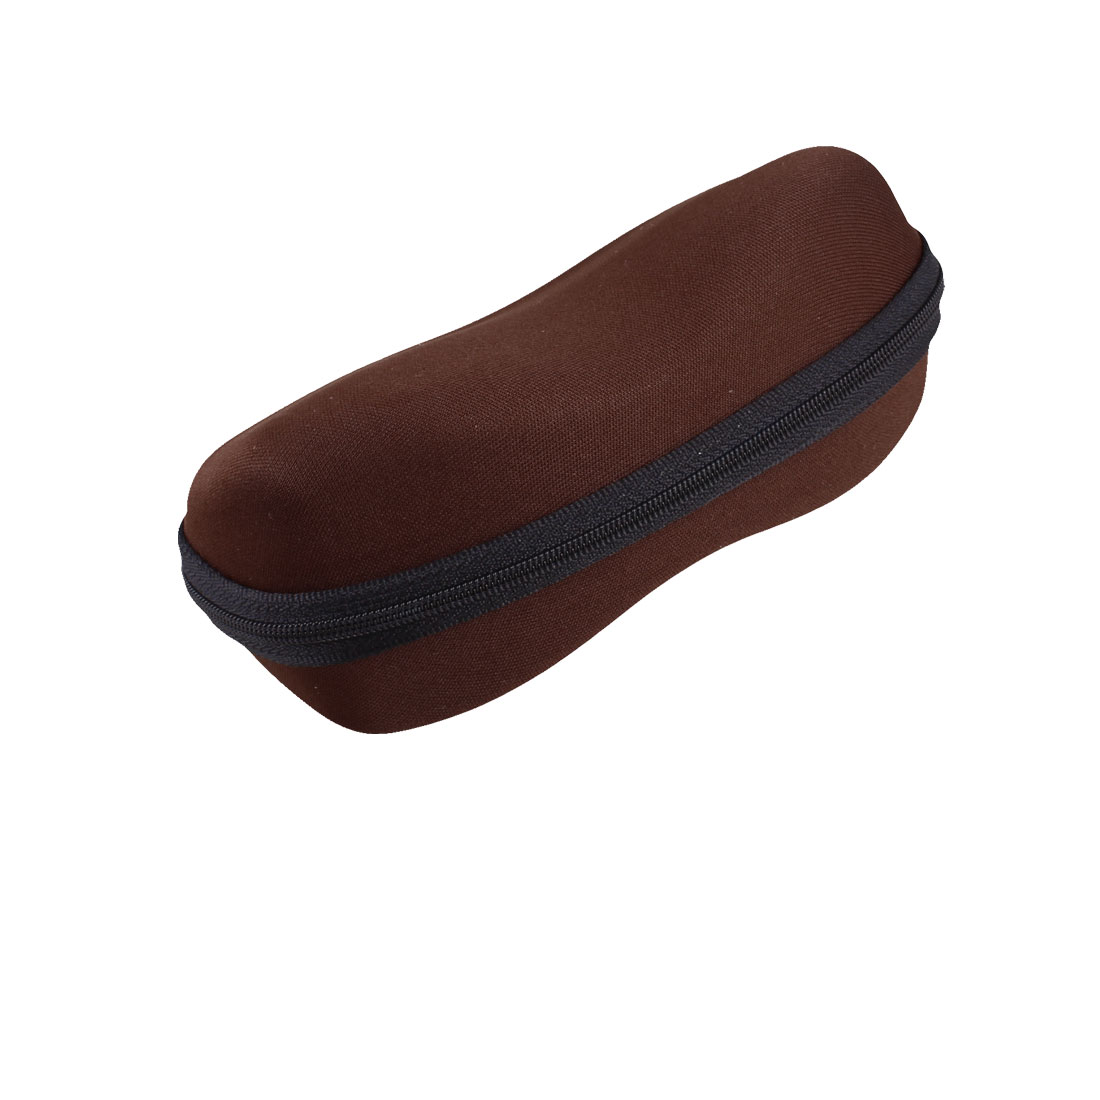 Spectacles Glasses Eyeglasses Faux Flannel Case Box Holder Chocolate Color